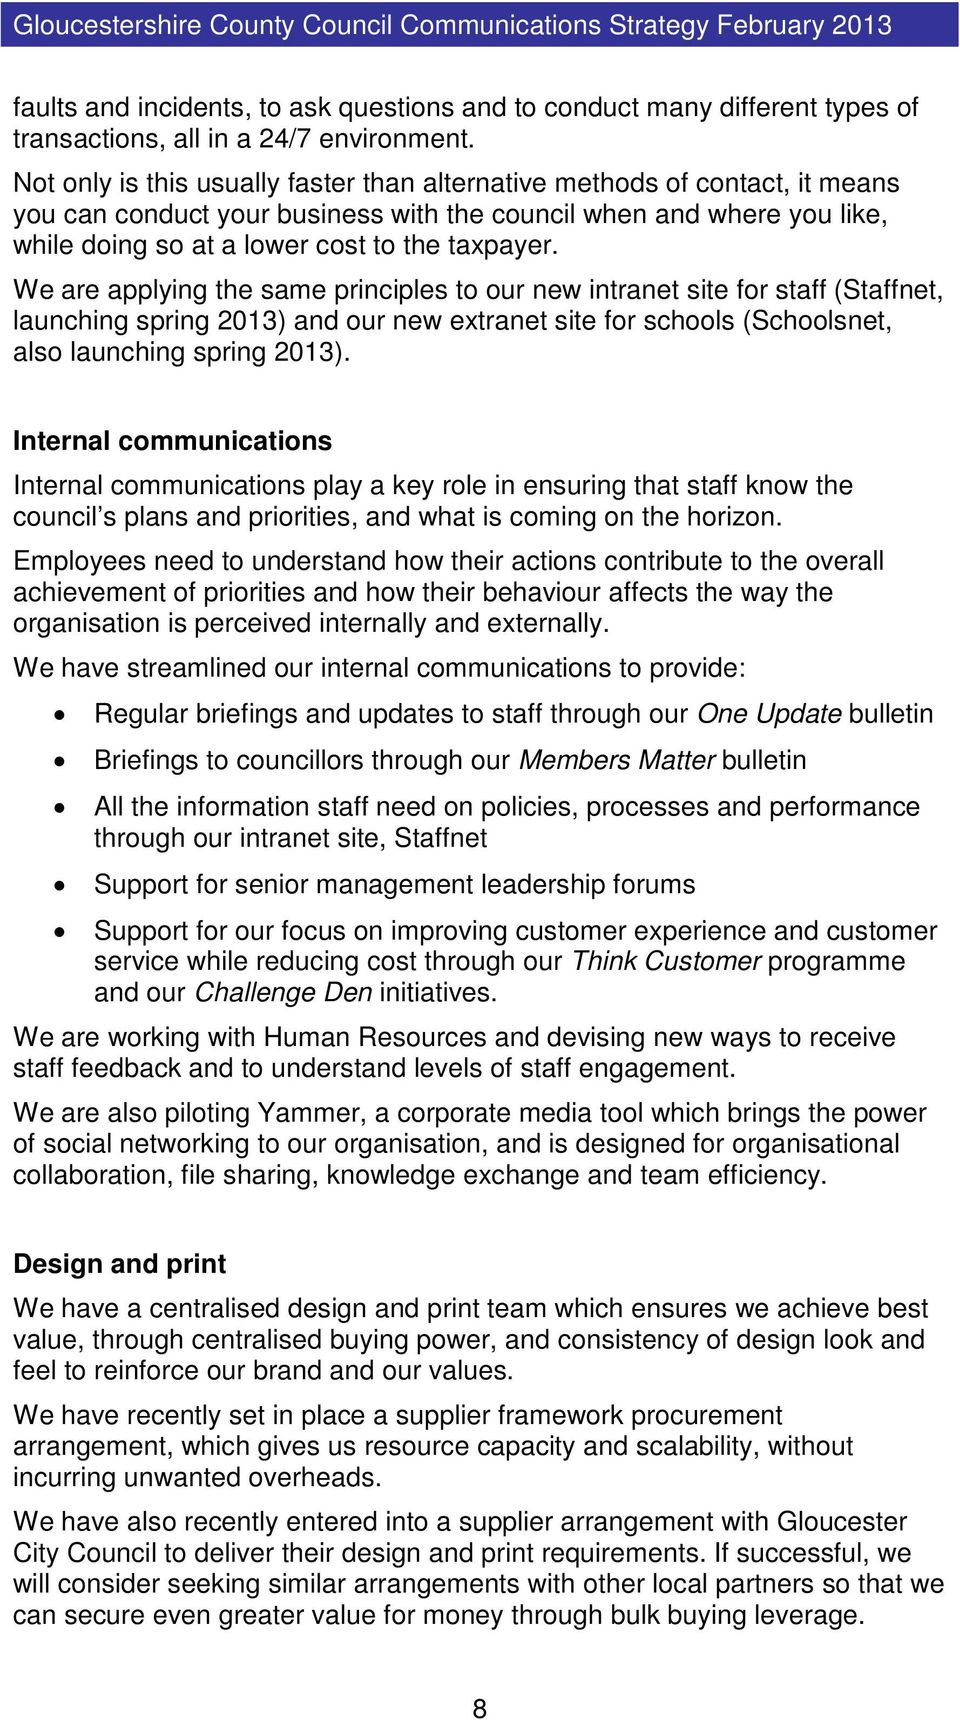 We are applying the same principles to our new intranet site for staff (Staffnet, launching spring 2013) and our new extranet site for schools (Schoolsnet, also launching spring 2013).